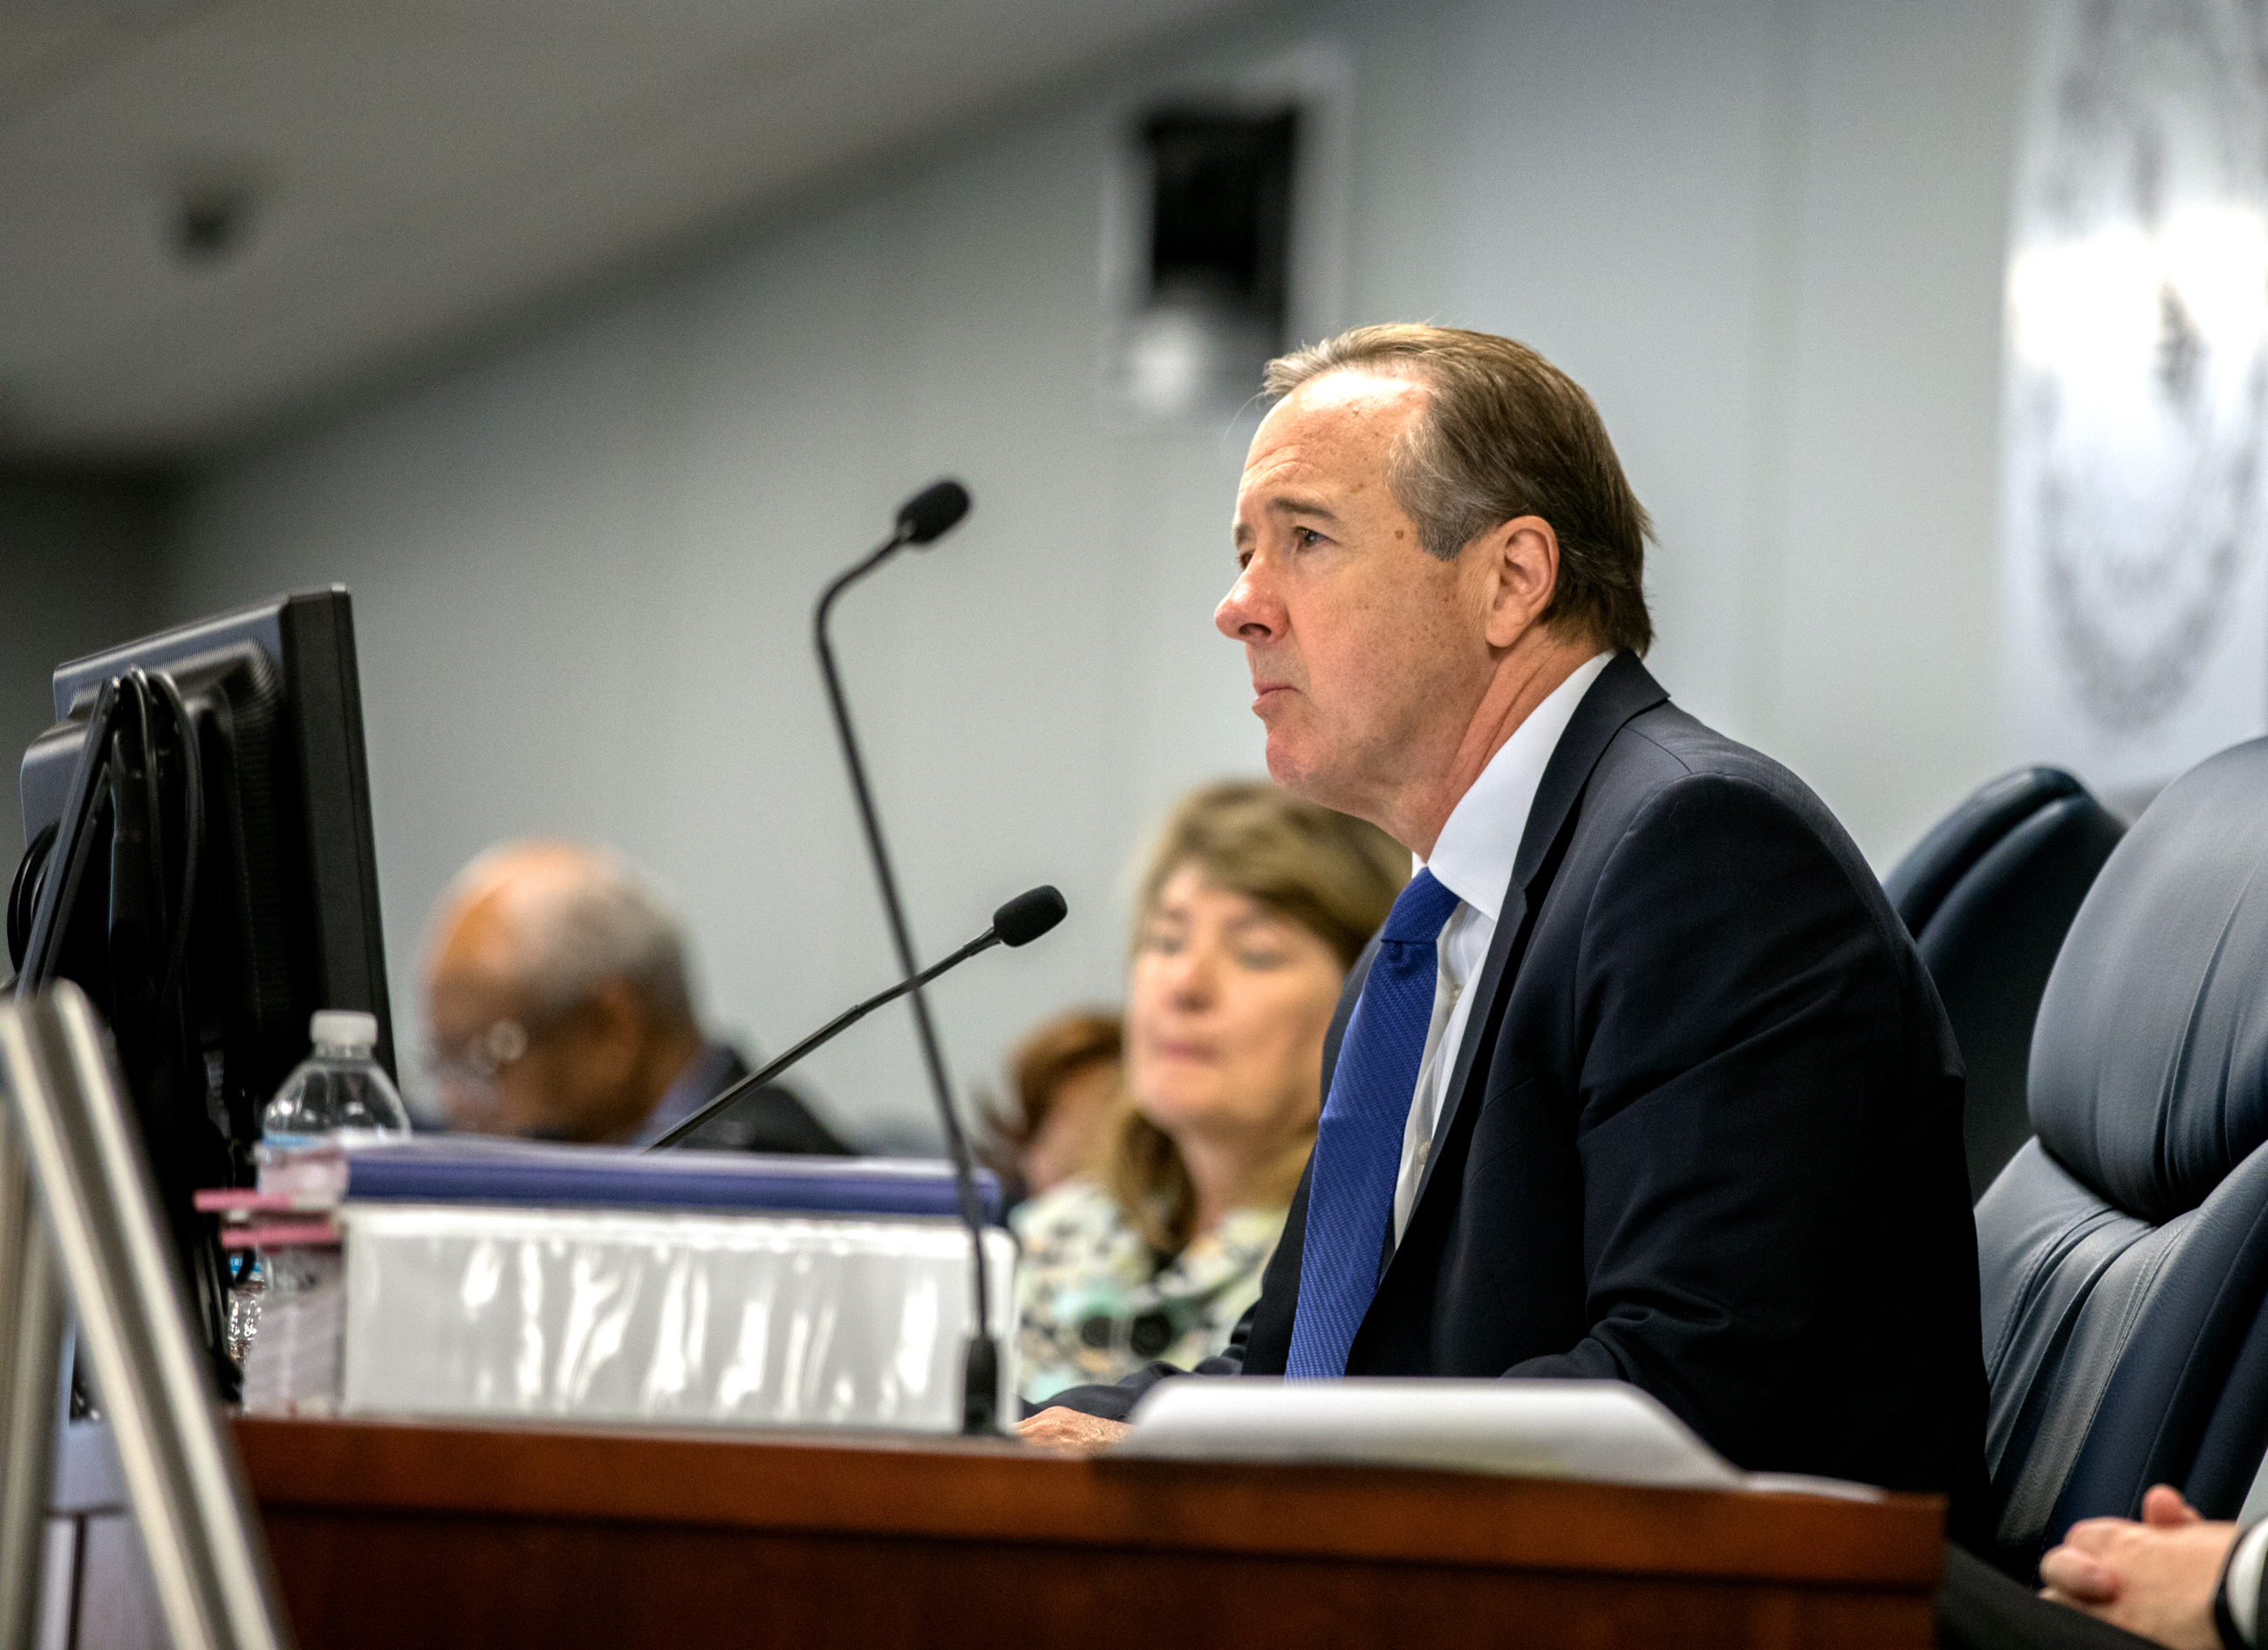 CPS CEO Forrest Claypool has defended the school system's overhaul of special education, saying the old system wasn't serving students well. (Andrew Gill/WBEZ)